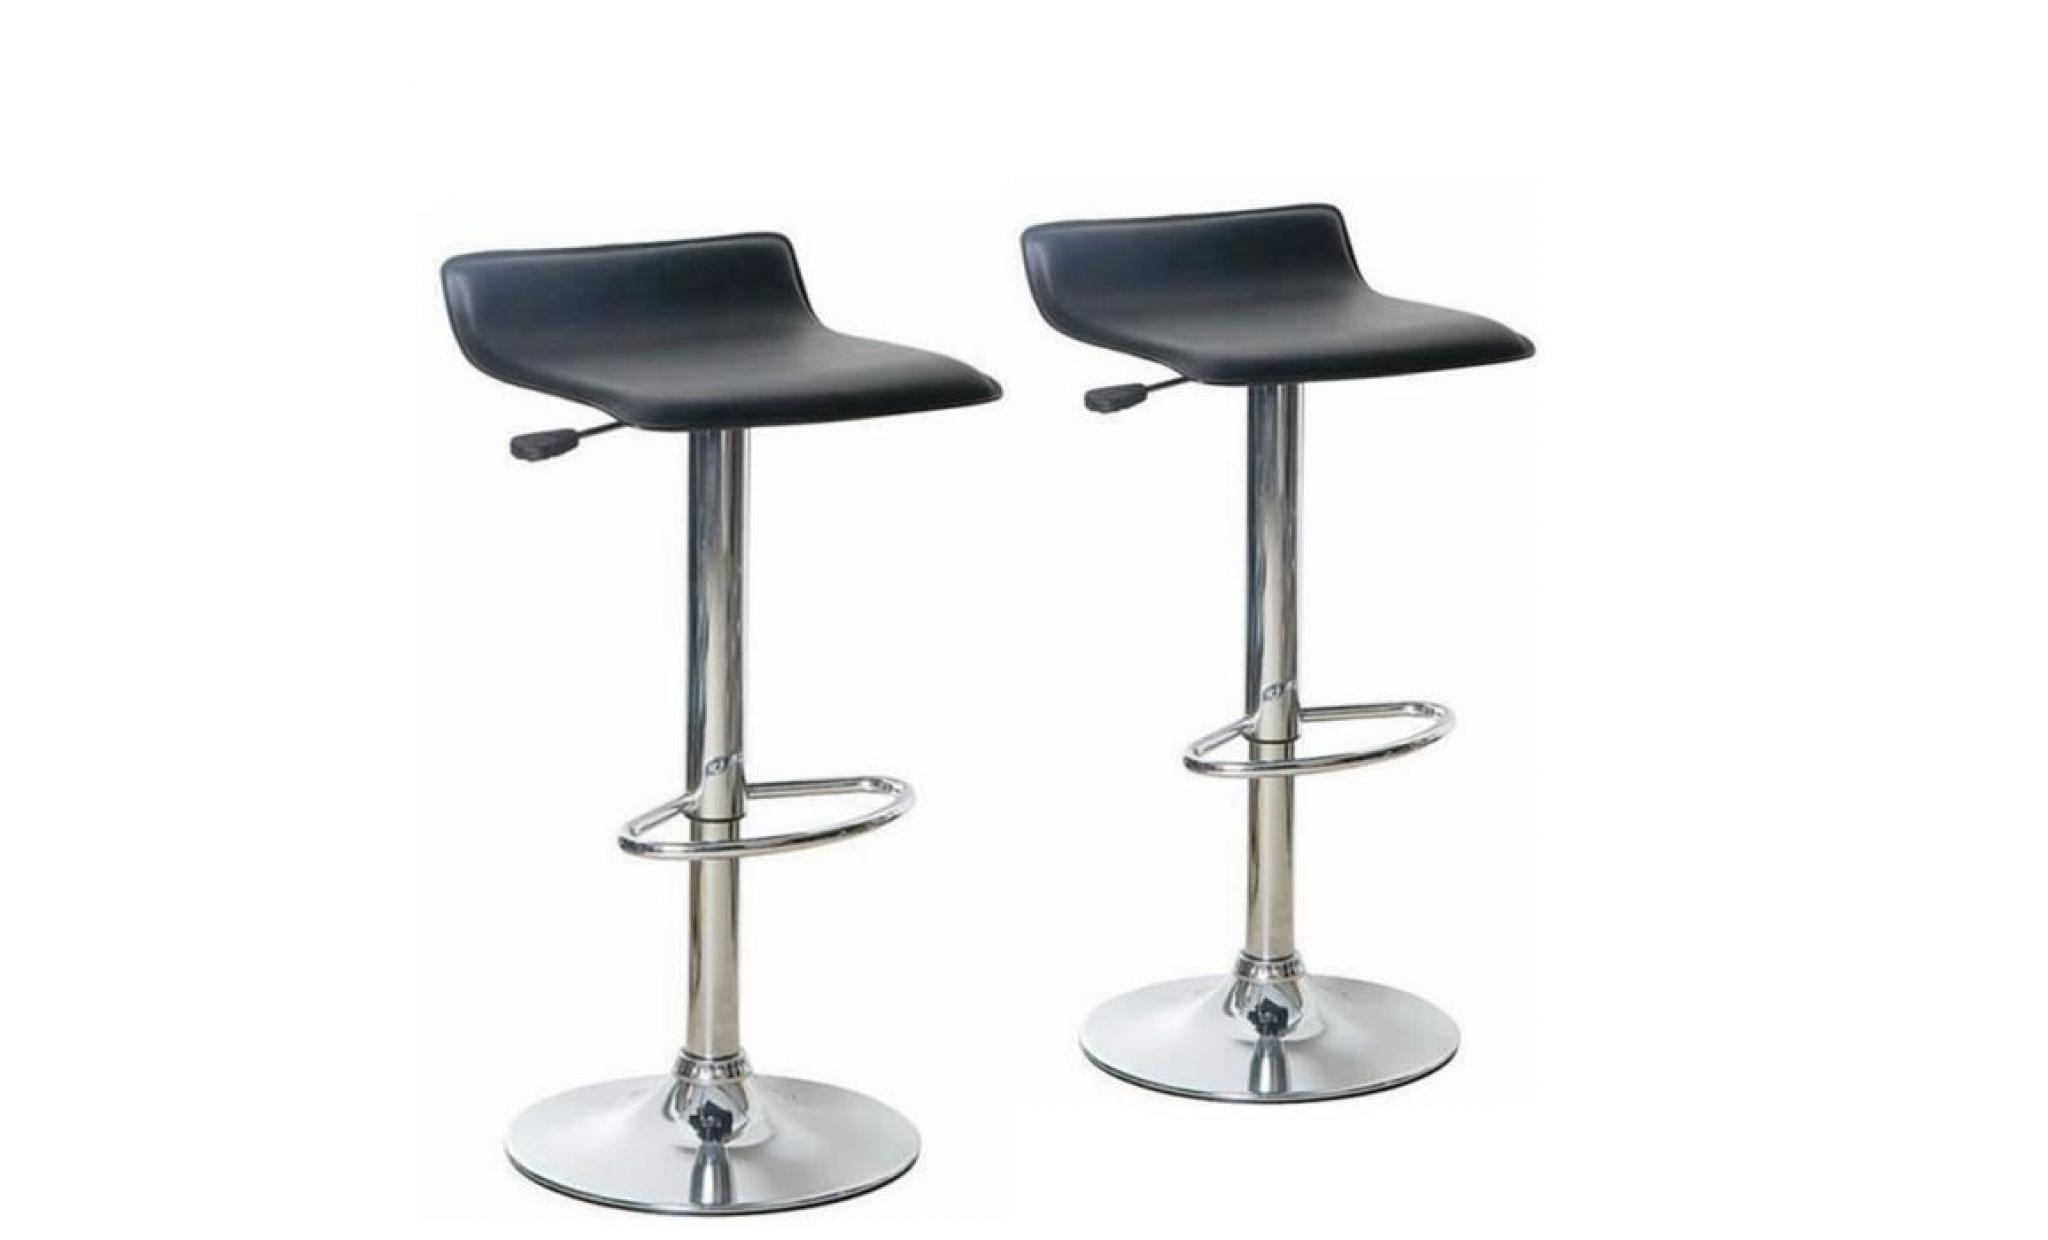 2 Reglable De Tabouret Hauteur Bar Degrees Lot A 360 Noir Chaise Rotatif rWBdxoQCe